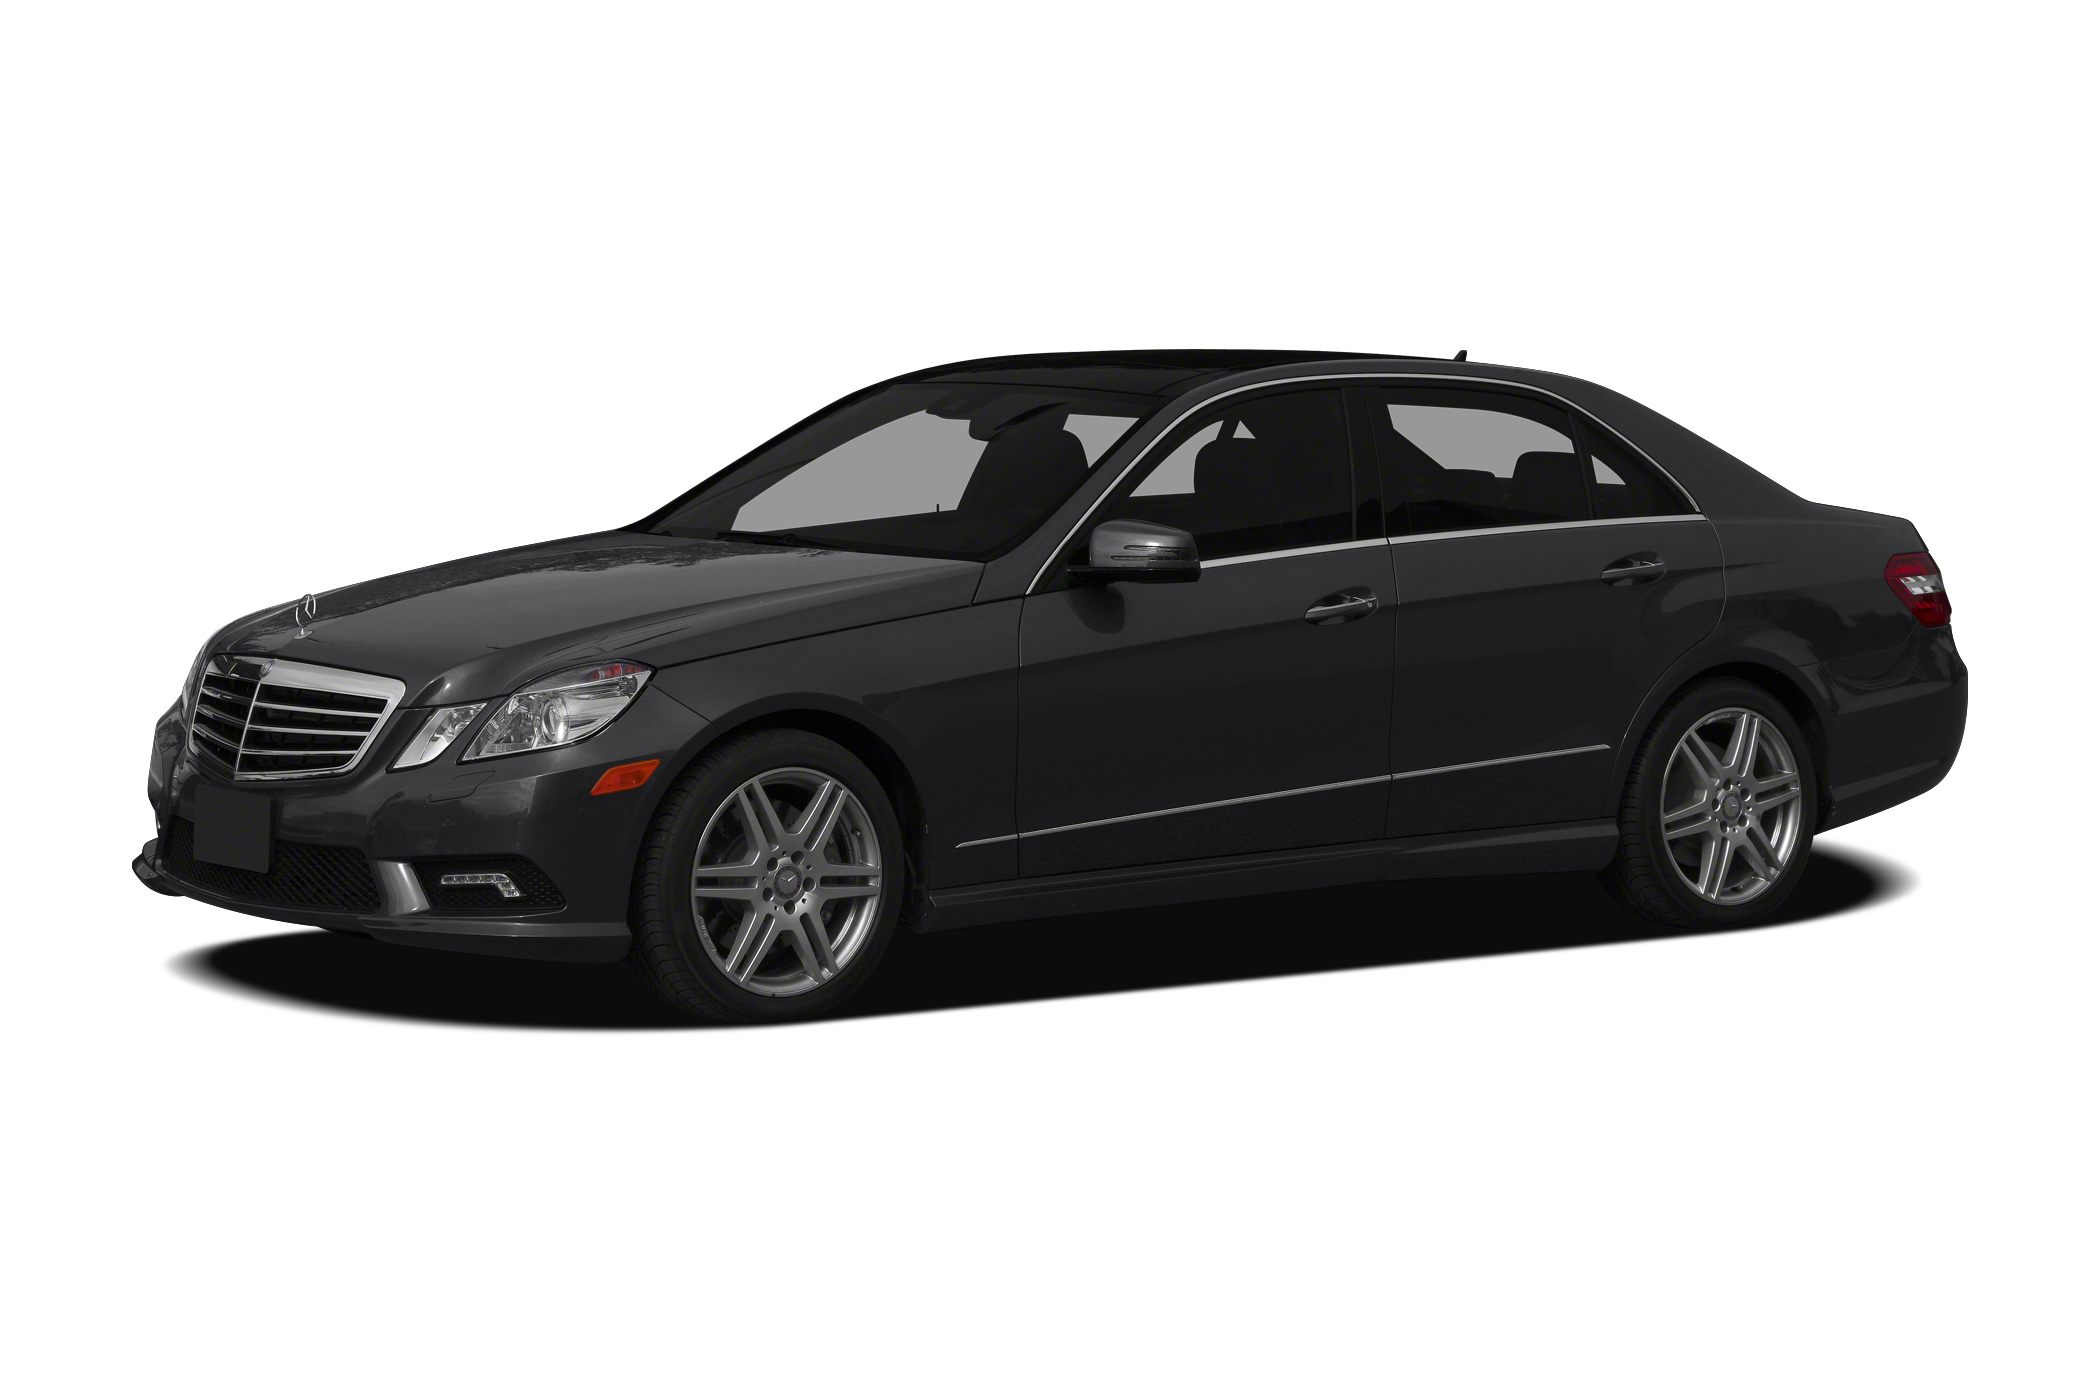 2010 Mercedes-Benz E-Class E550 Coupe for sale in Louisville for $28,991 with 72,561 miles.